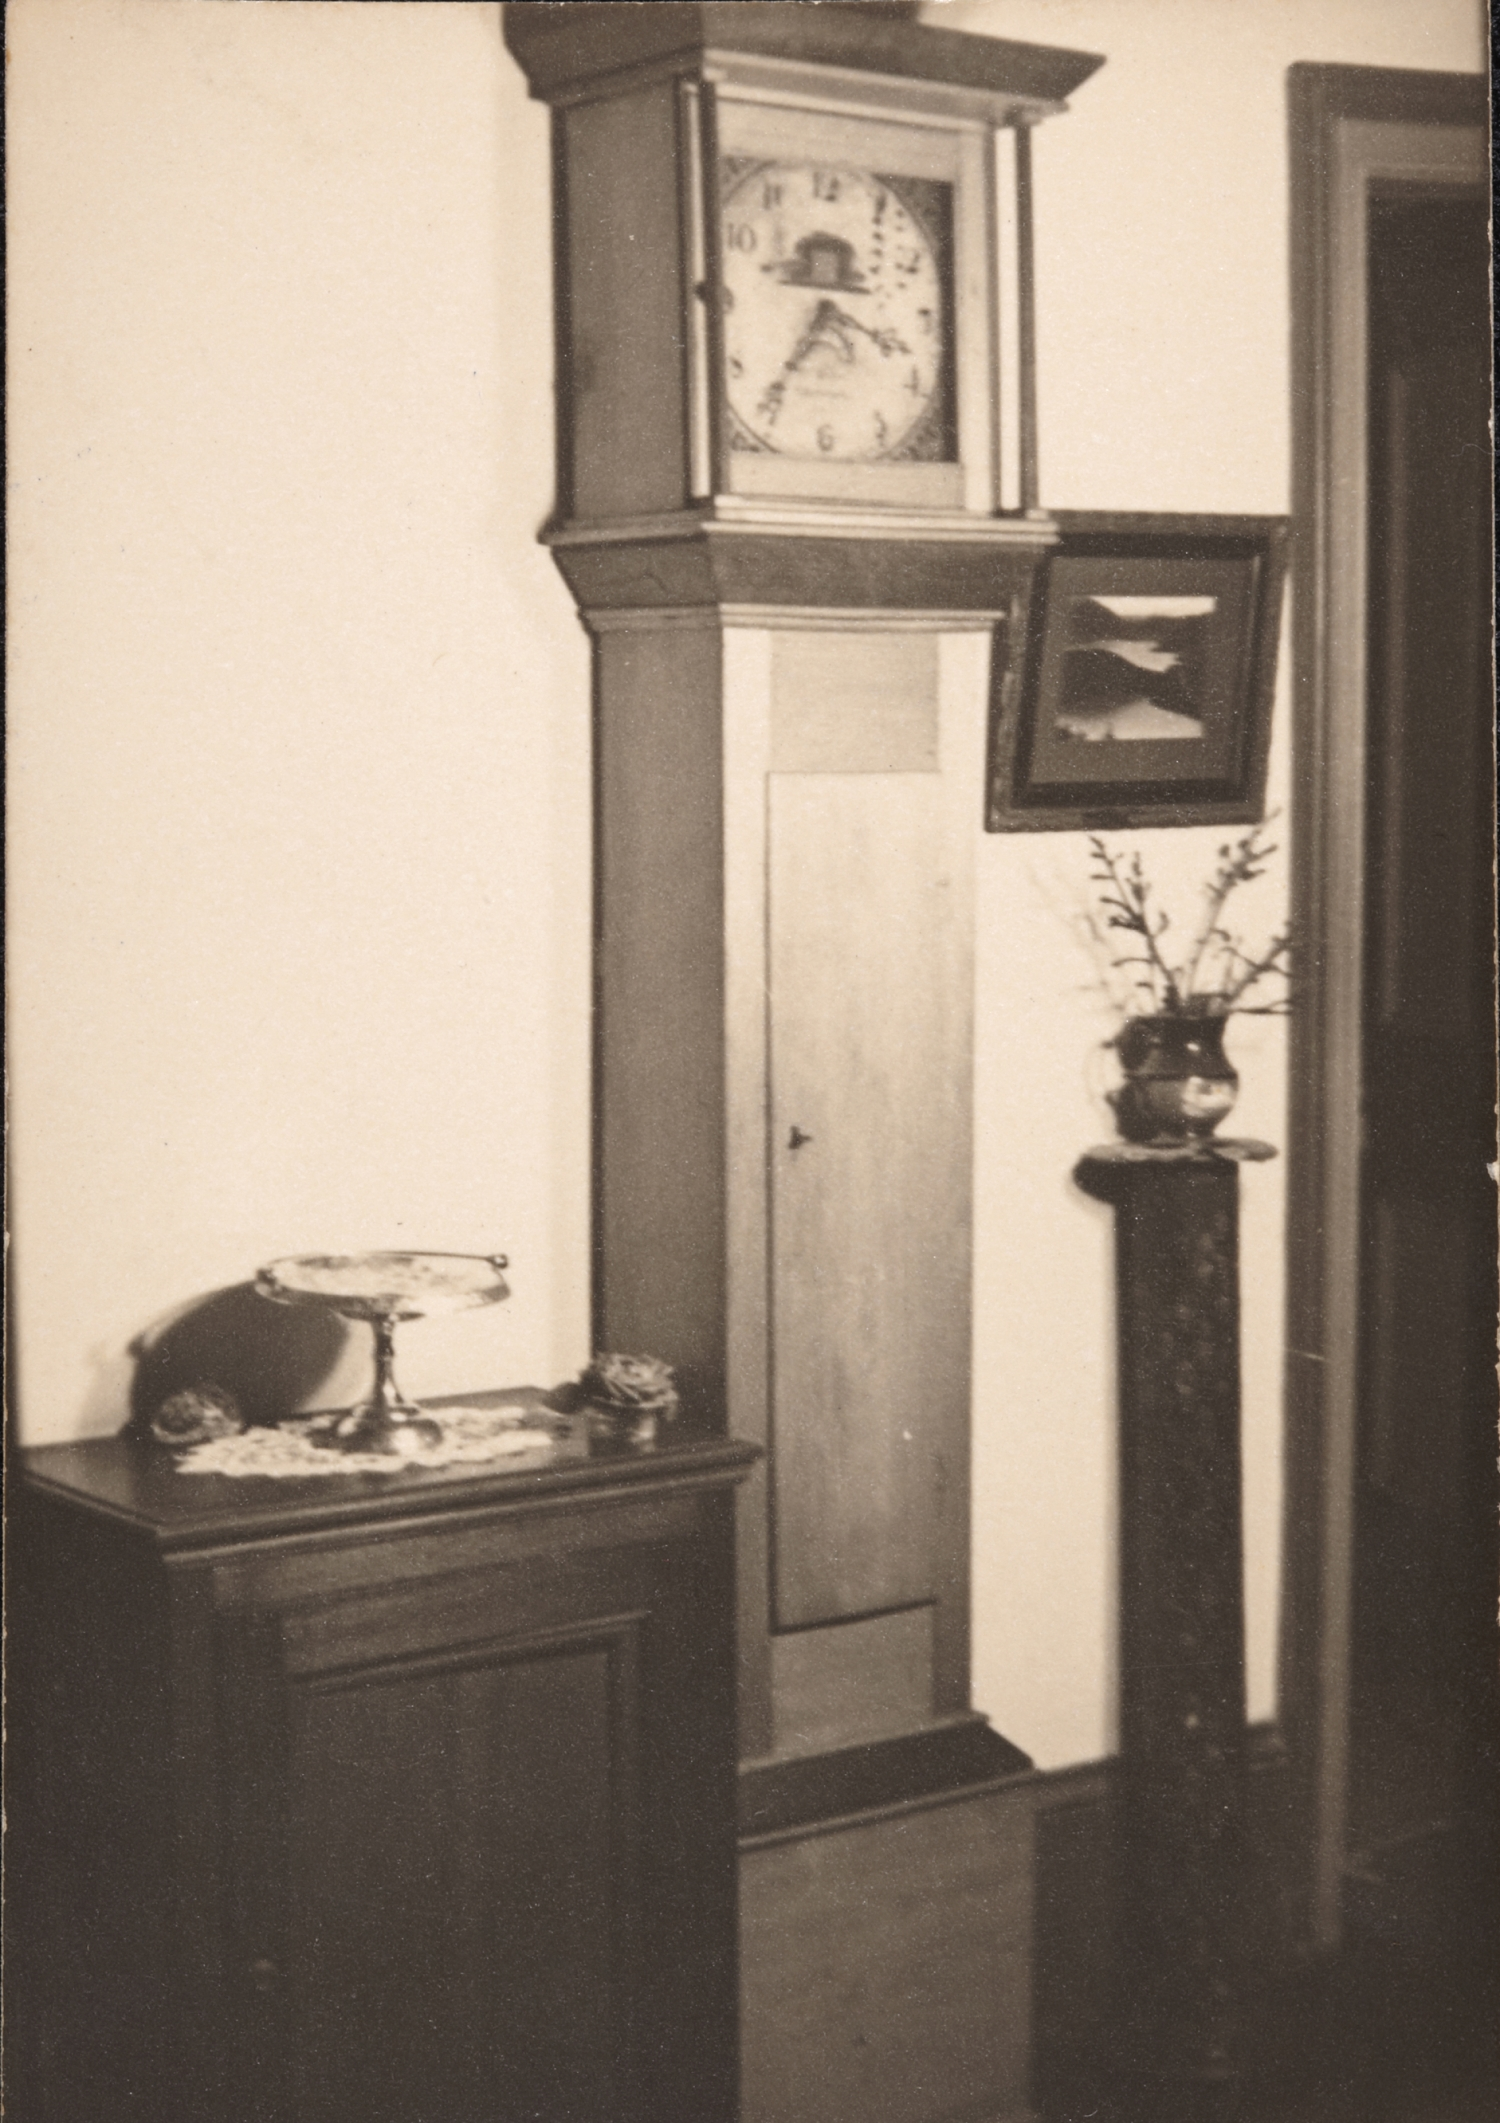 Black and white photo of tall clock in hallway.